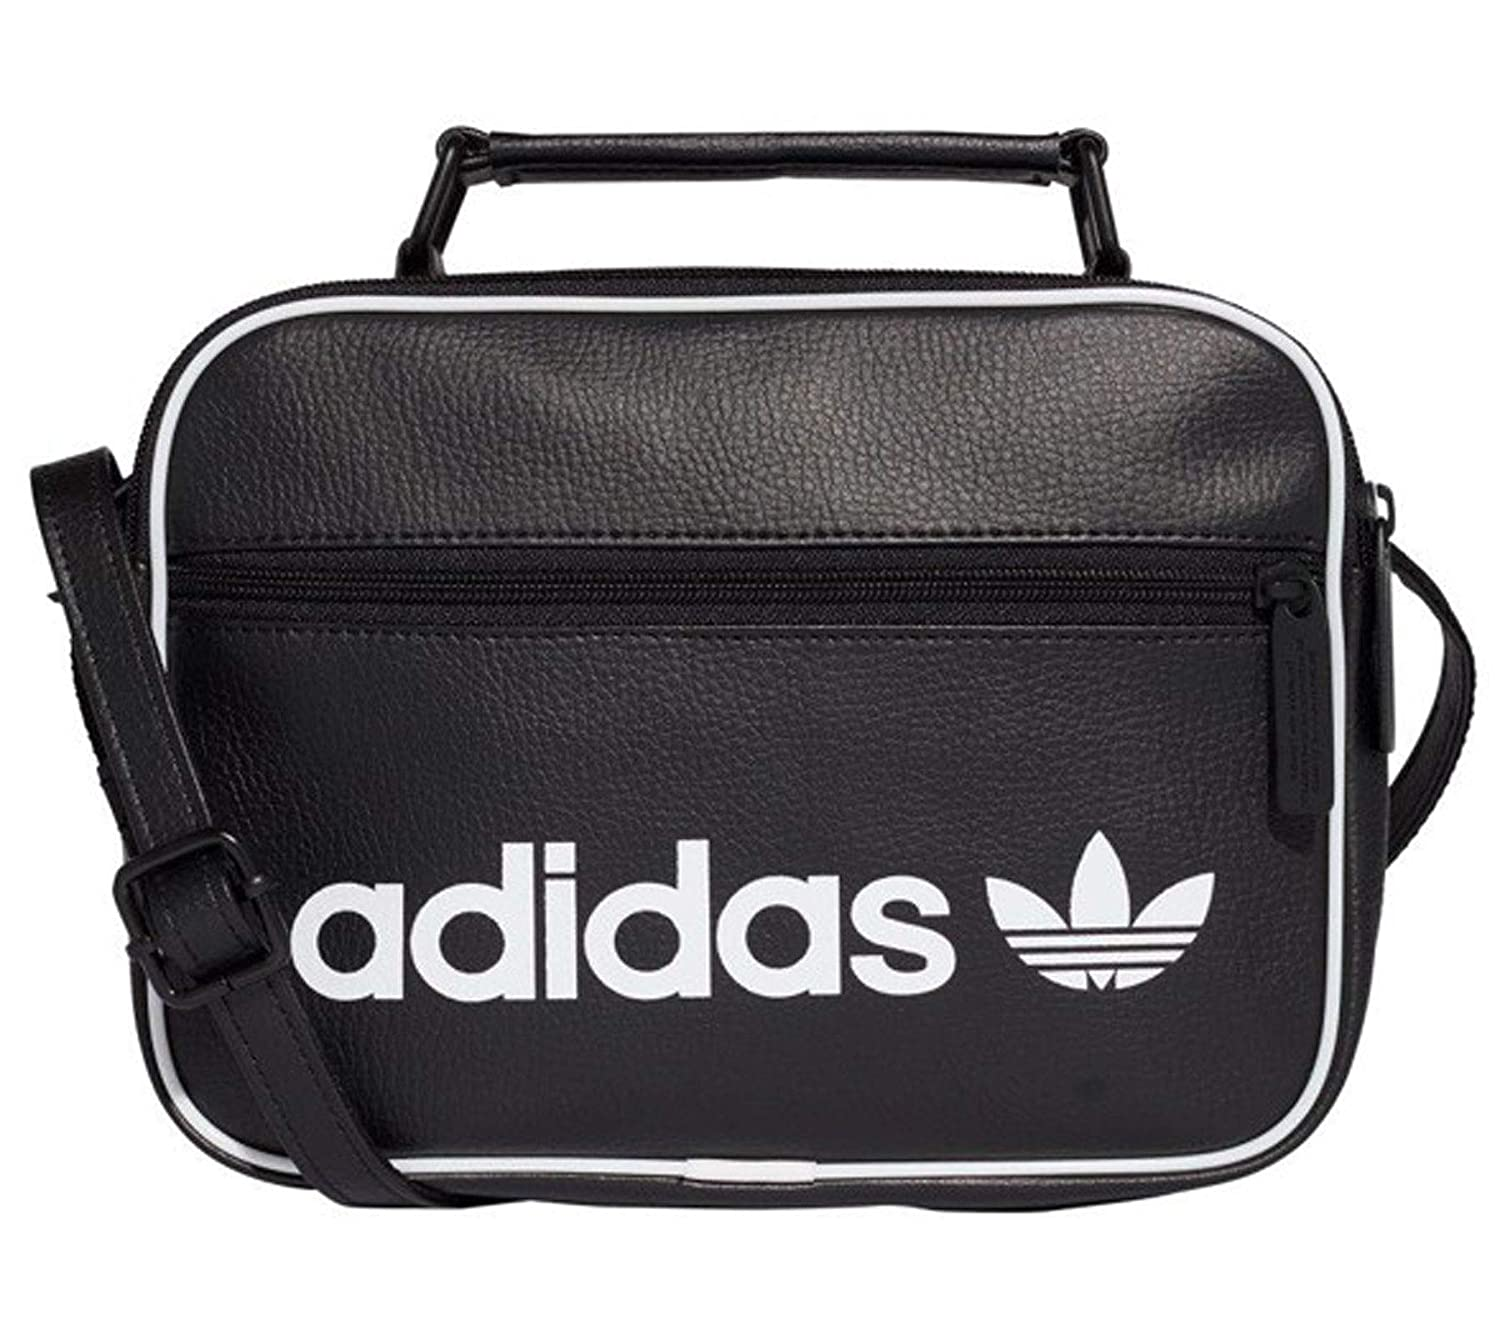 9019a09af352 adidas Unisex s Mini Airliner Vintage Messenger Bag